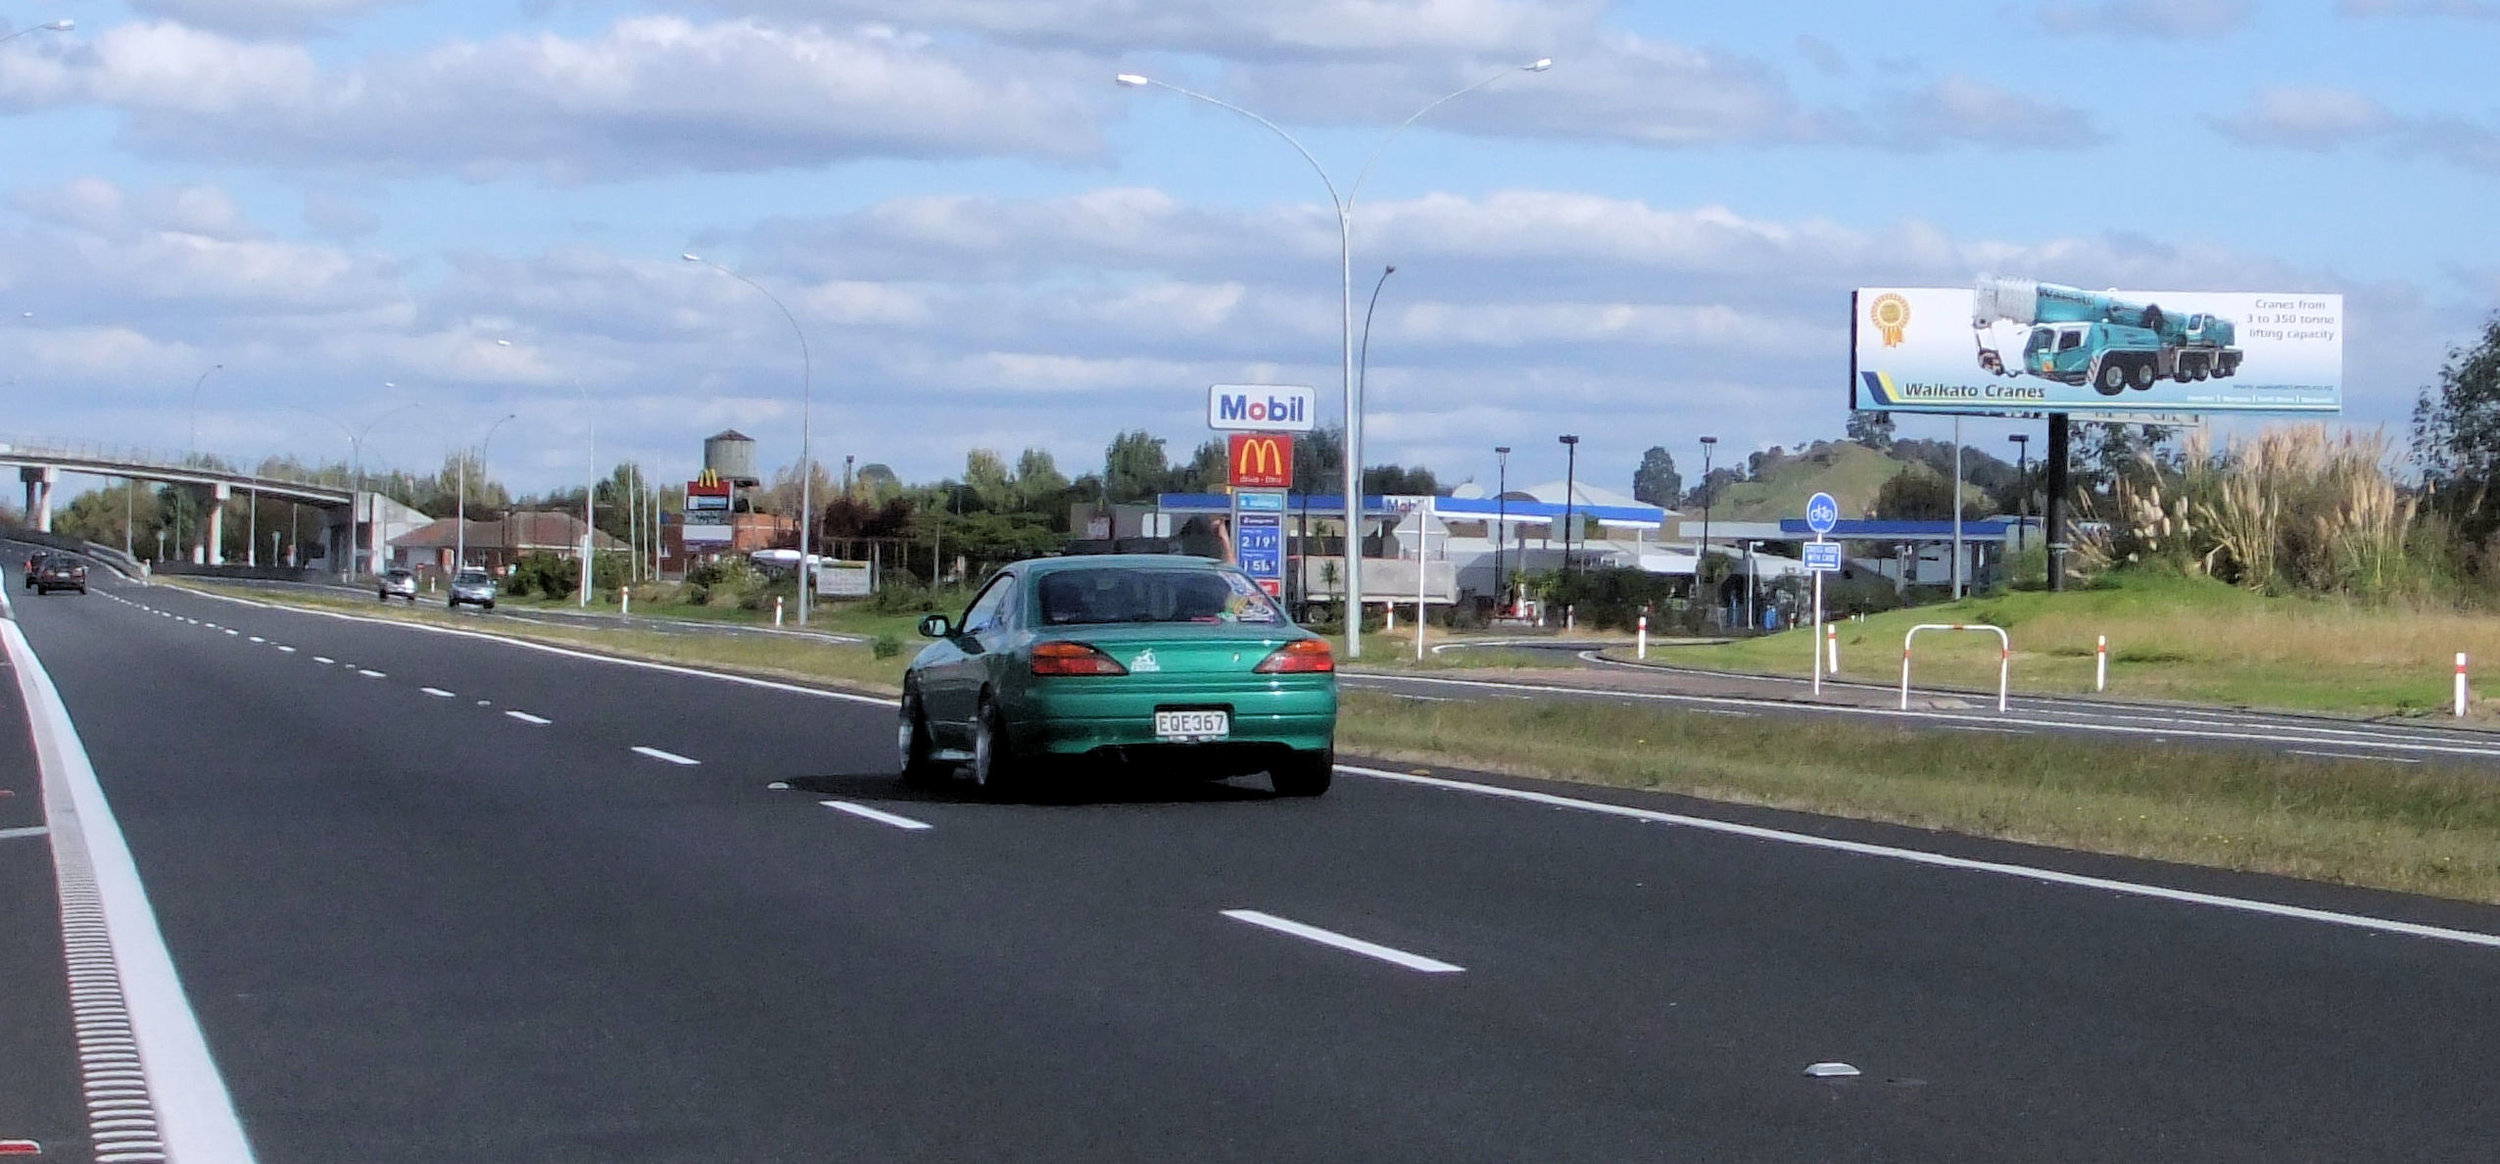 Viewed southbound